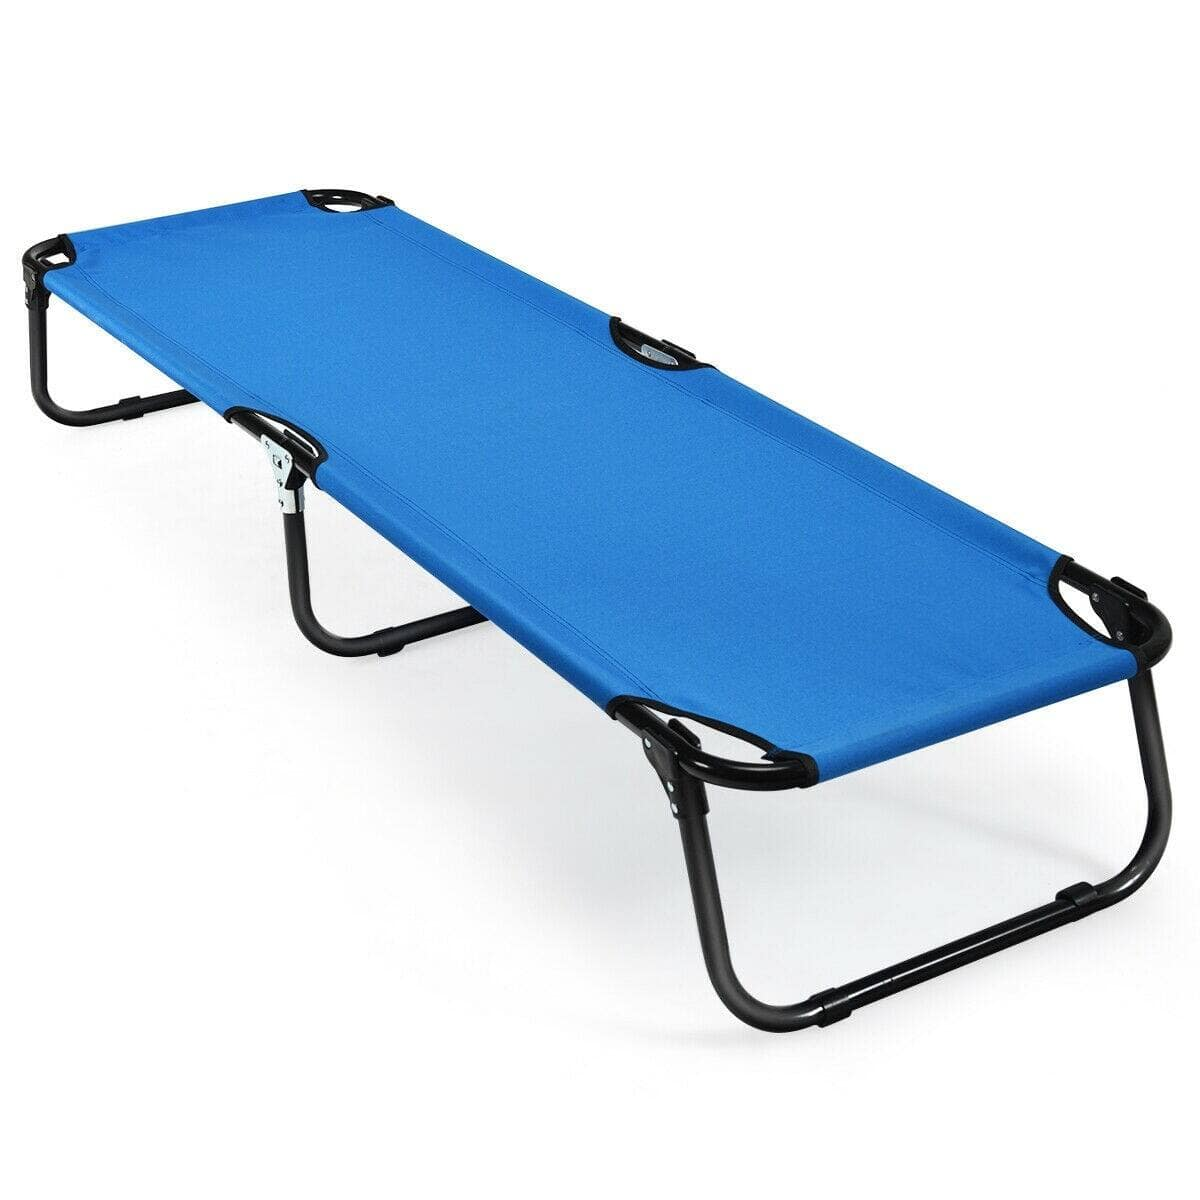 Costway Folding Camping Bed Outdoor Portable Military Cot Sleeping Hiking $42.95 + FS